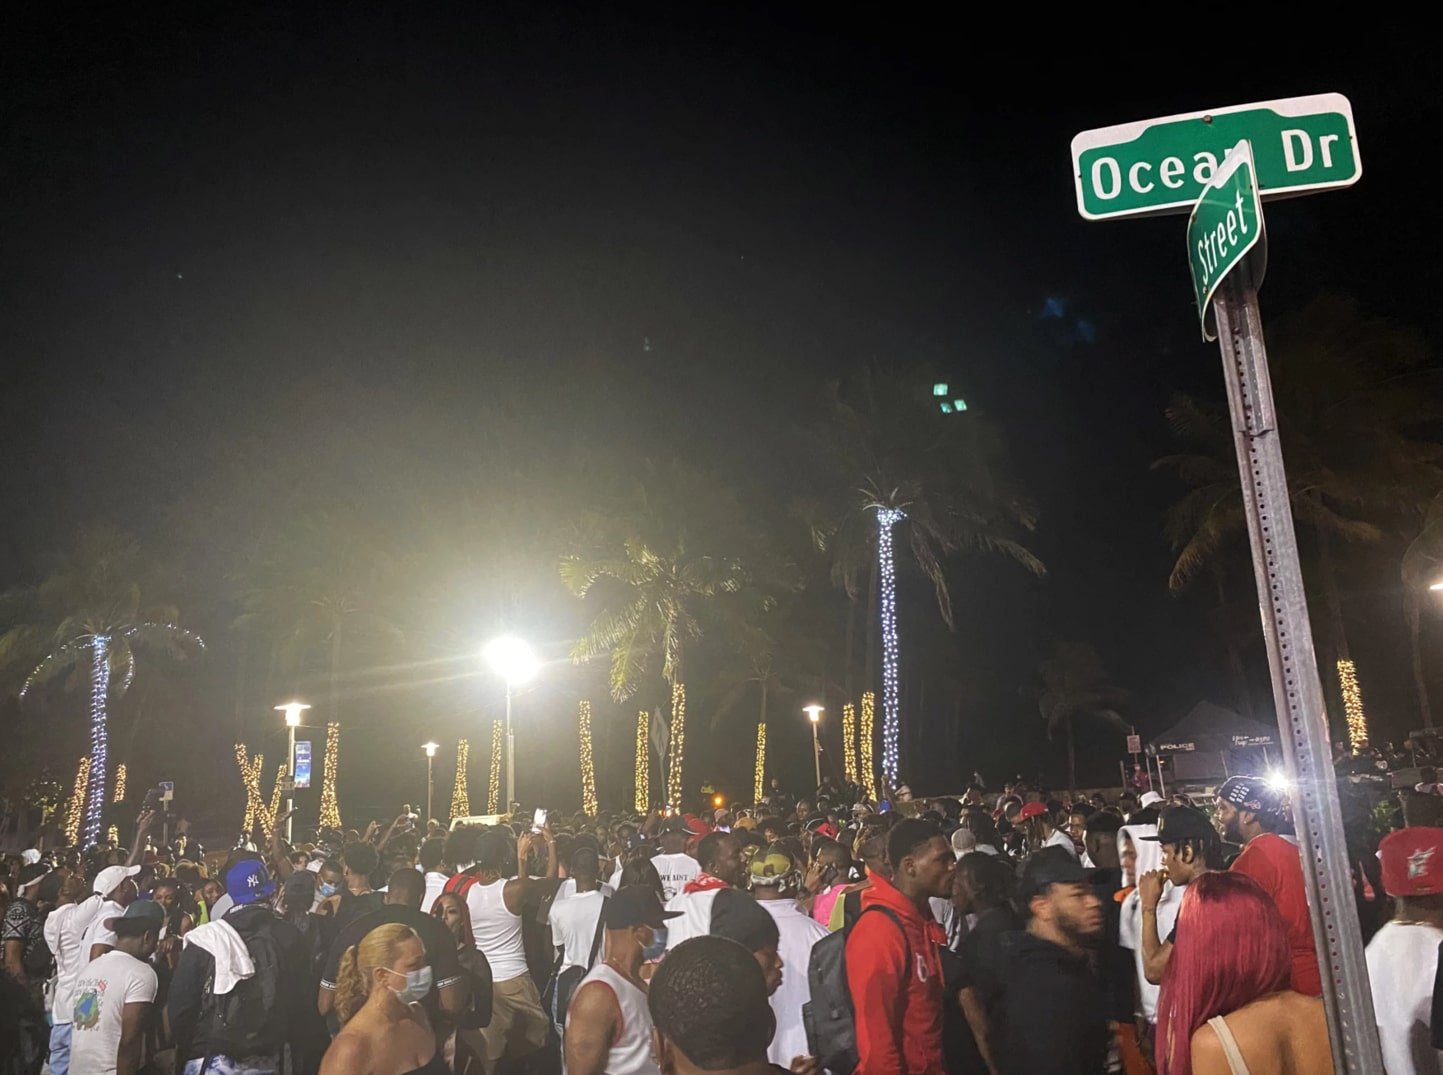 a large throng of people at night, tightly packed without masks. a street sign is in the foreground with palm trees decorated with string lights in the background